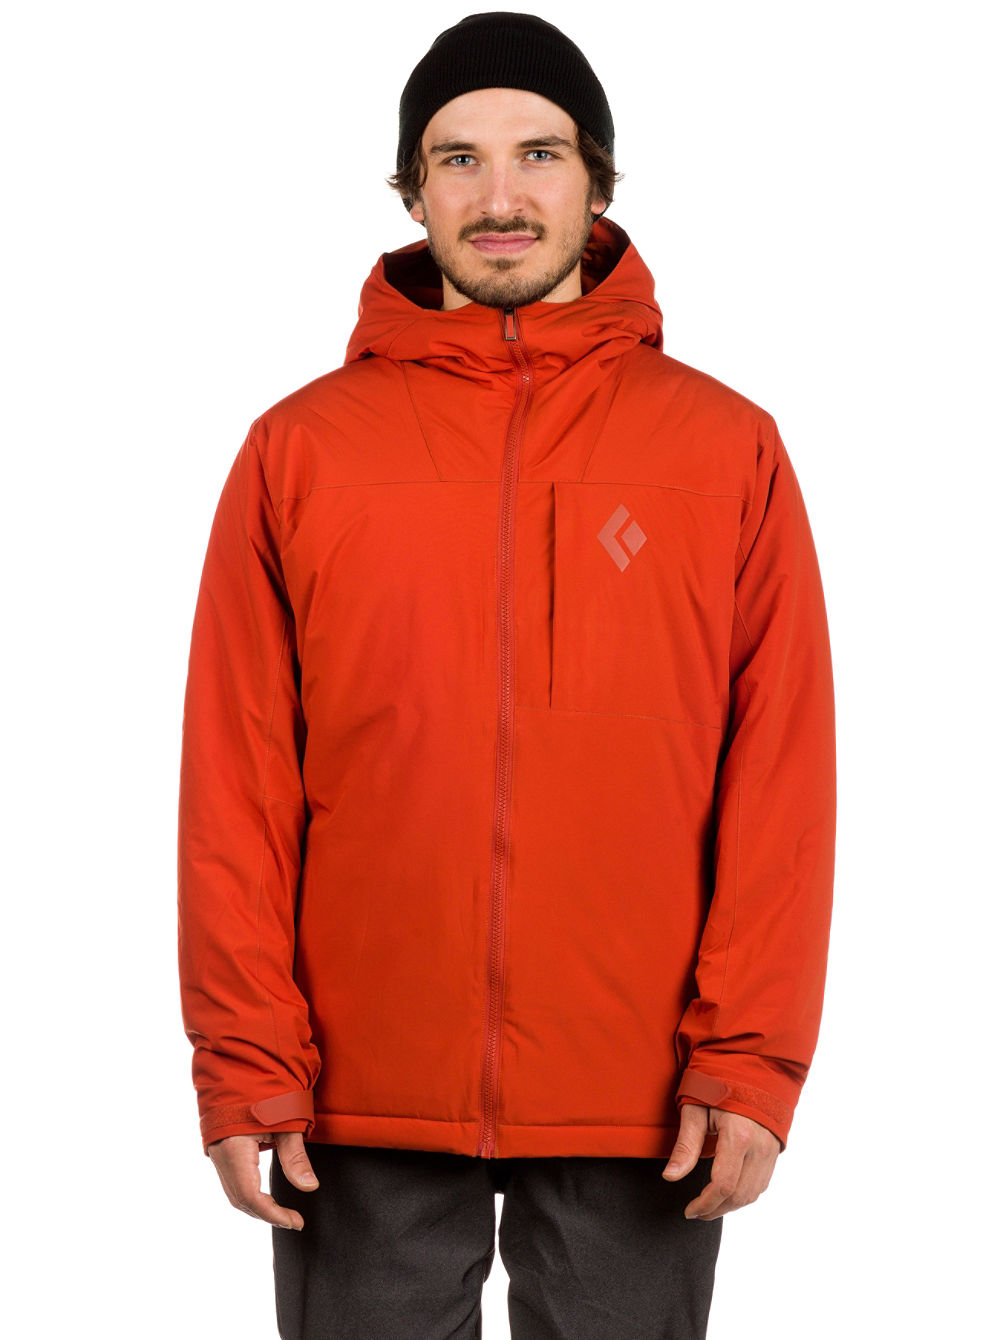 Pursuit Hoody Jacke